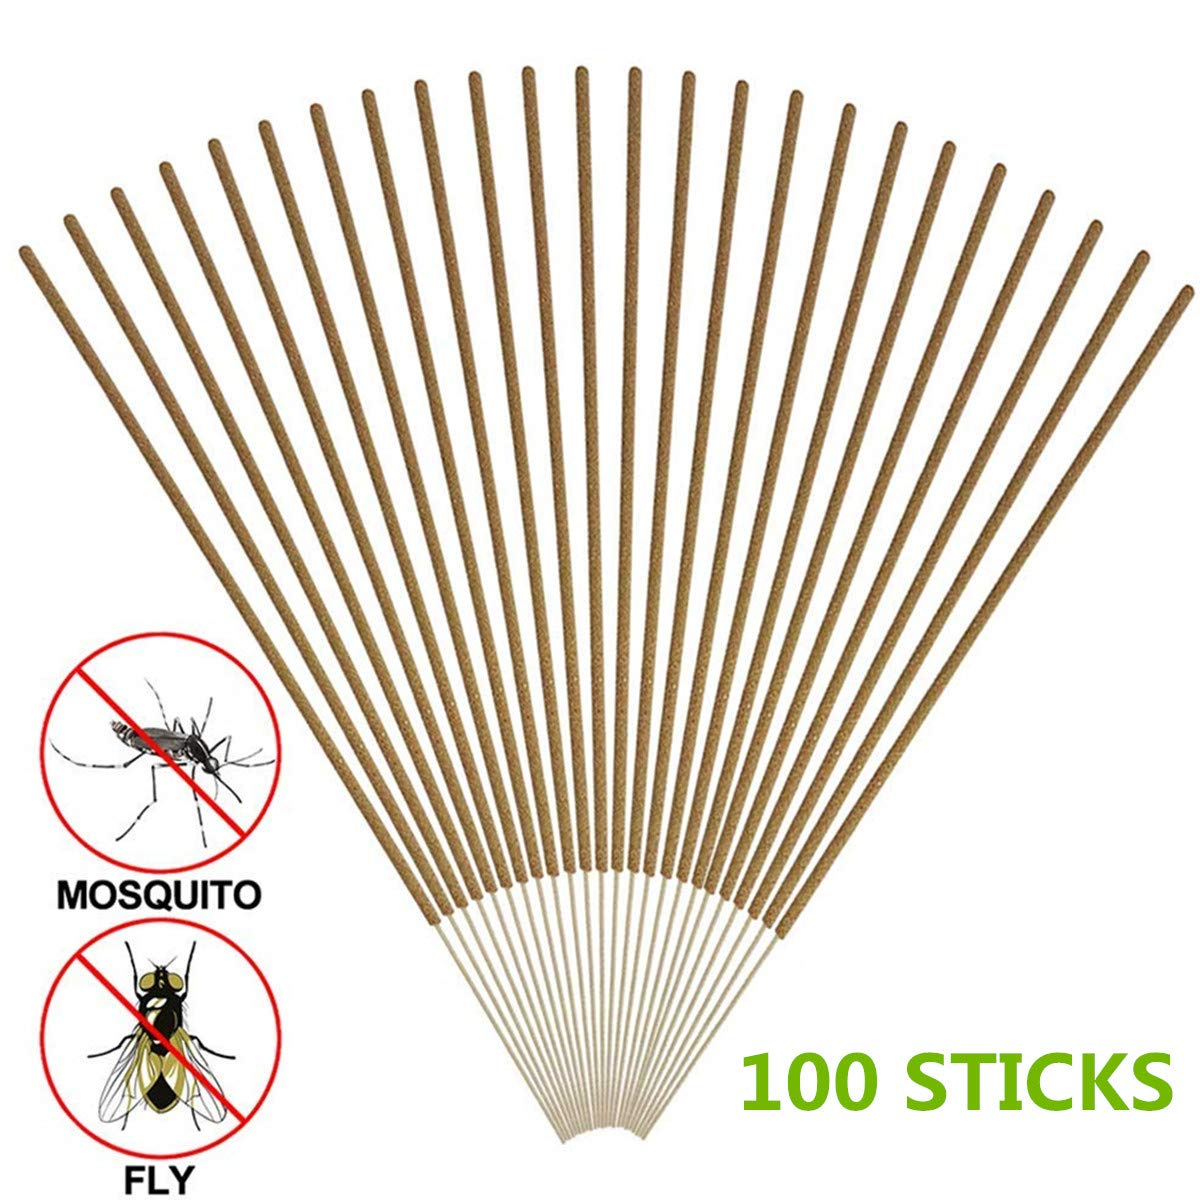 COSYWORLD Mosquito Repellent Sticks Natural Insect Repellent Incense Sticks